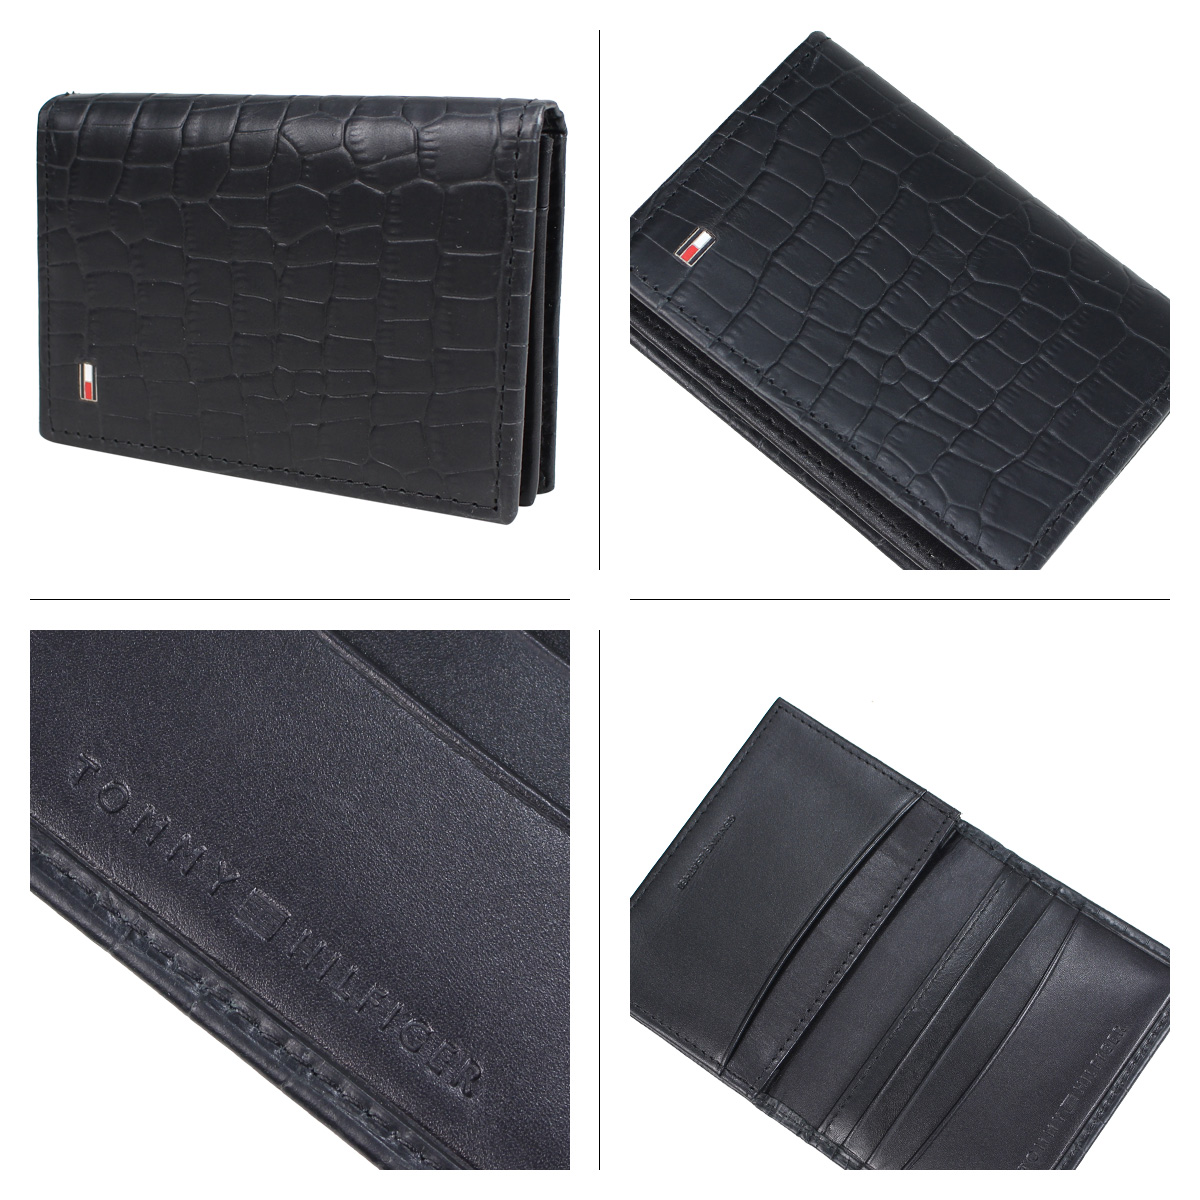 new style 2be15 74742 TOMMY HILFIGER CARD CASE トミーヒルフィガー card case card case men leather black  31TL200015-001 [2/18 Shinnyu load] [192]